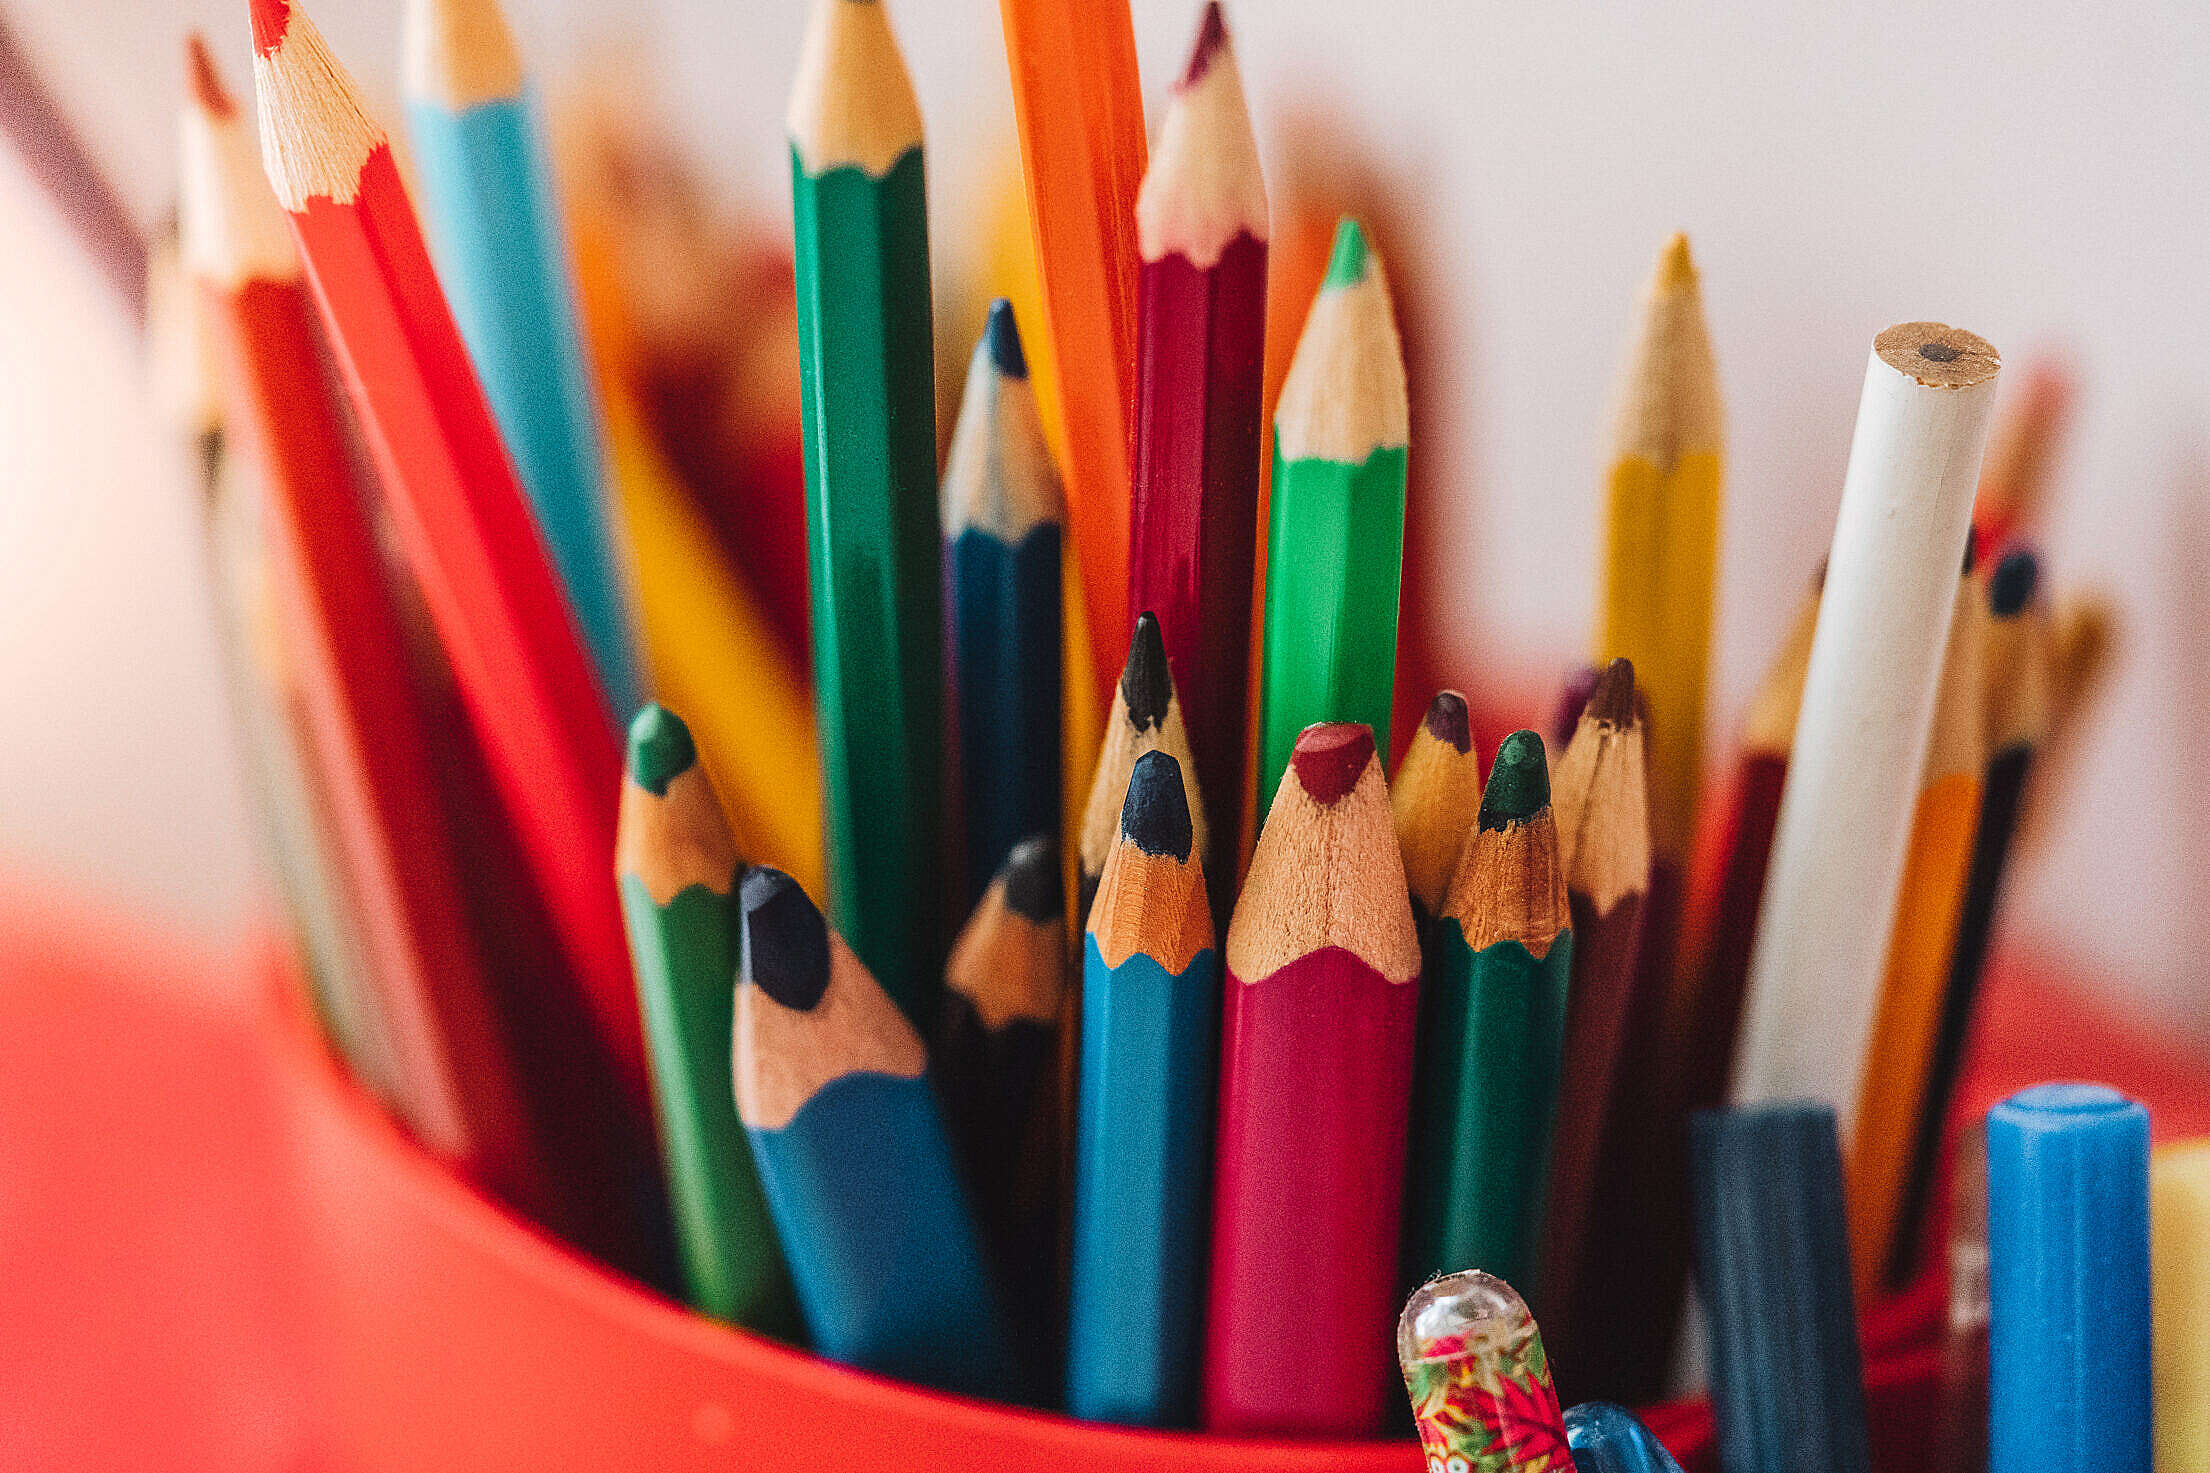 Kids Color Pencils in a Cup Free Stock Photo